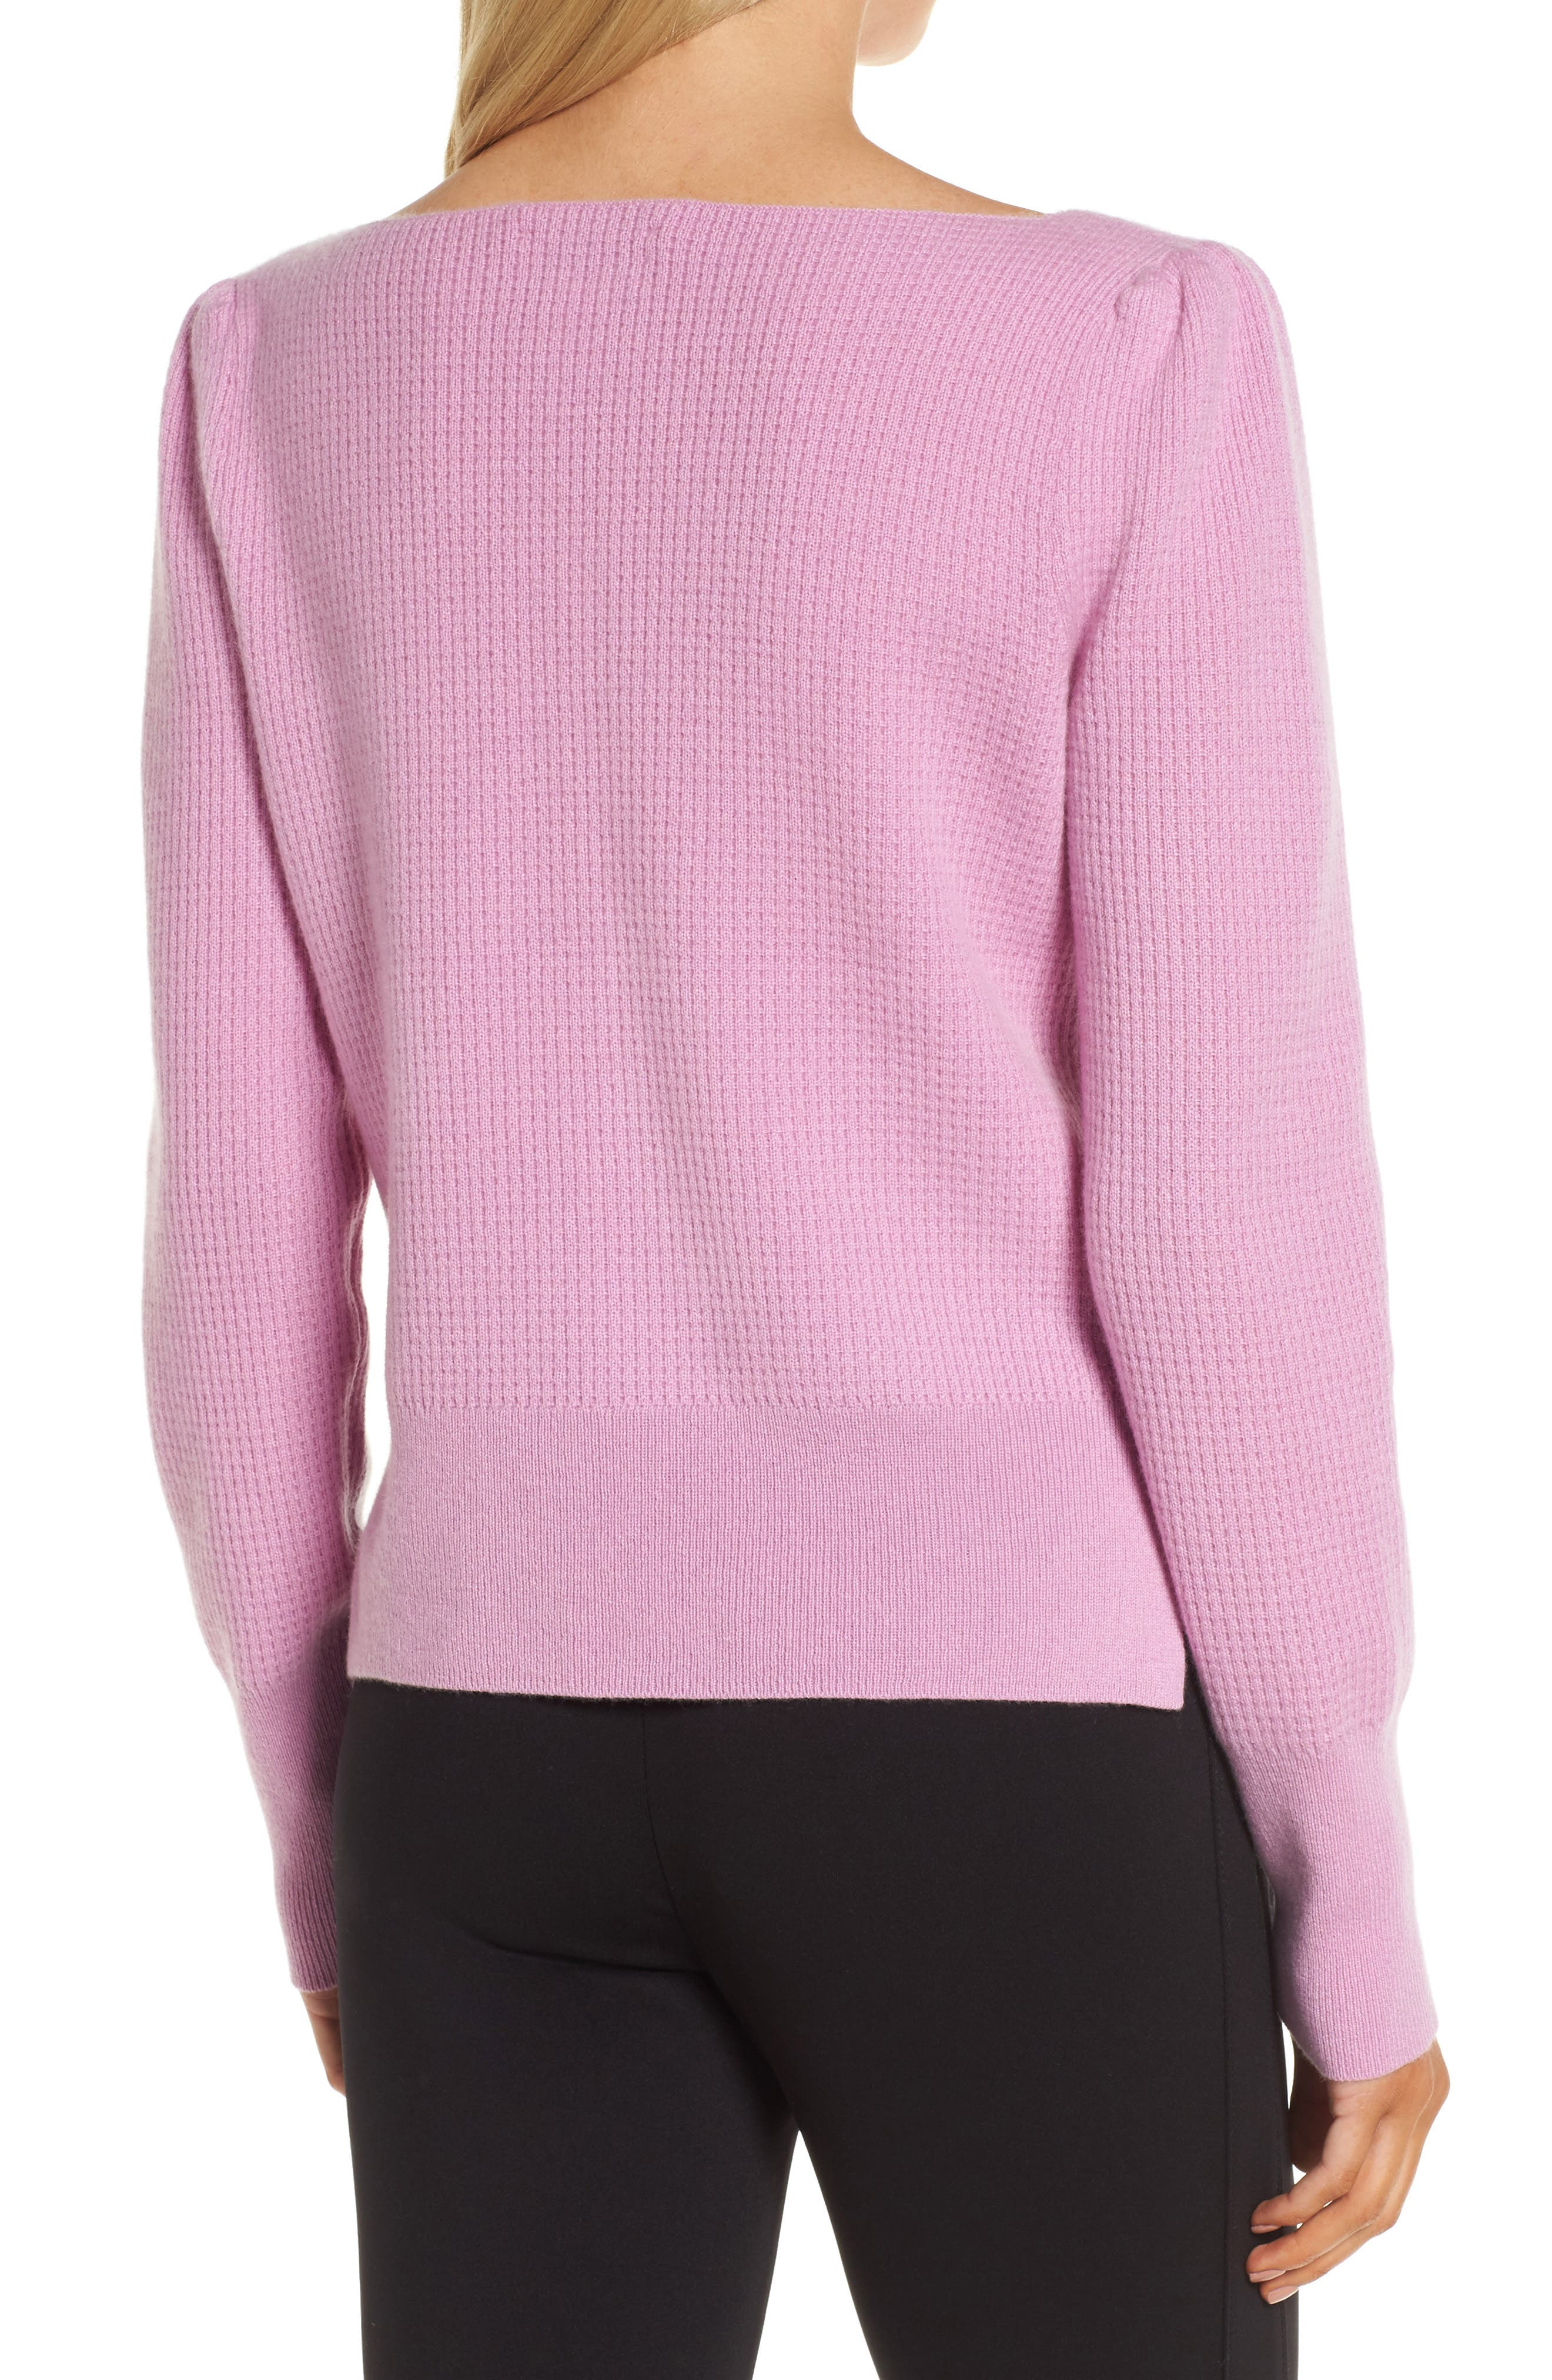 Waffle Stitch Cashmere Sweater,                             Alternate thumbnail 2, color,                             Pink Gale